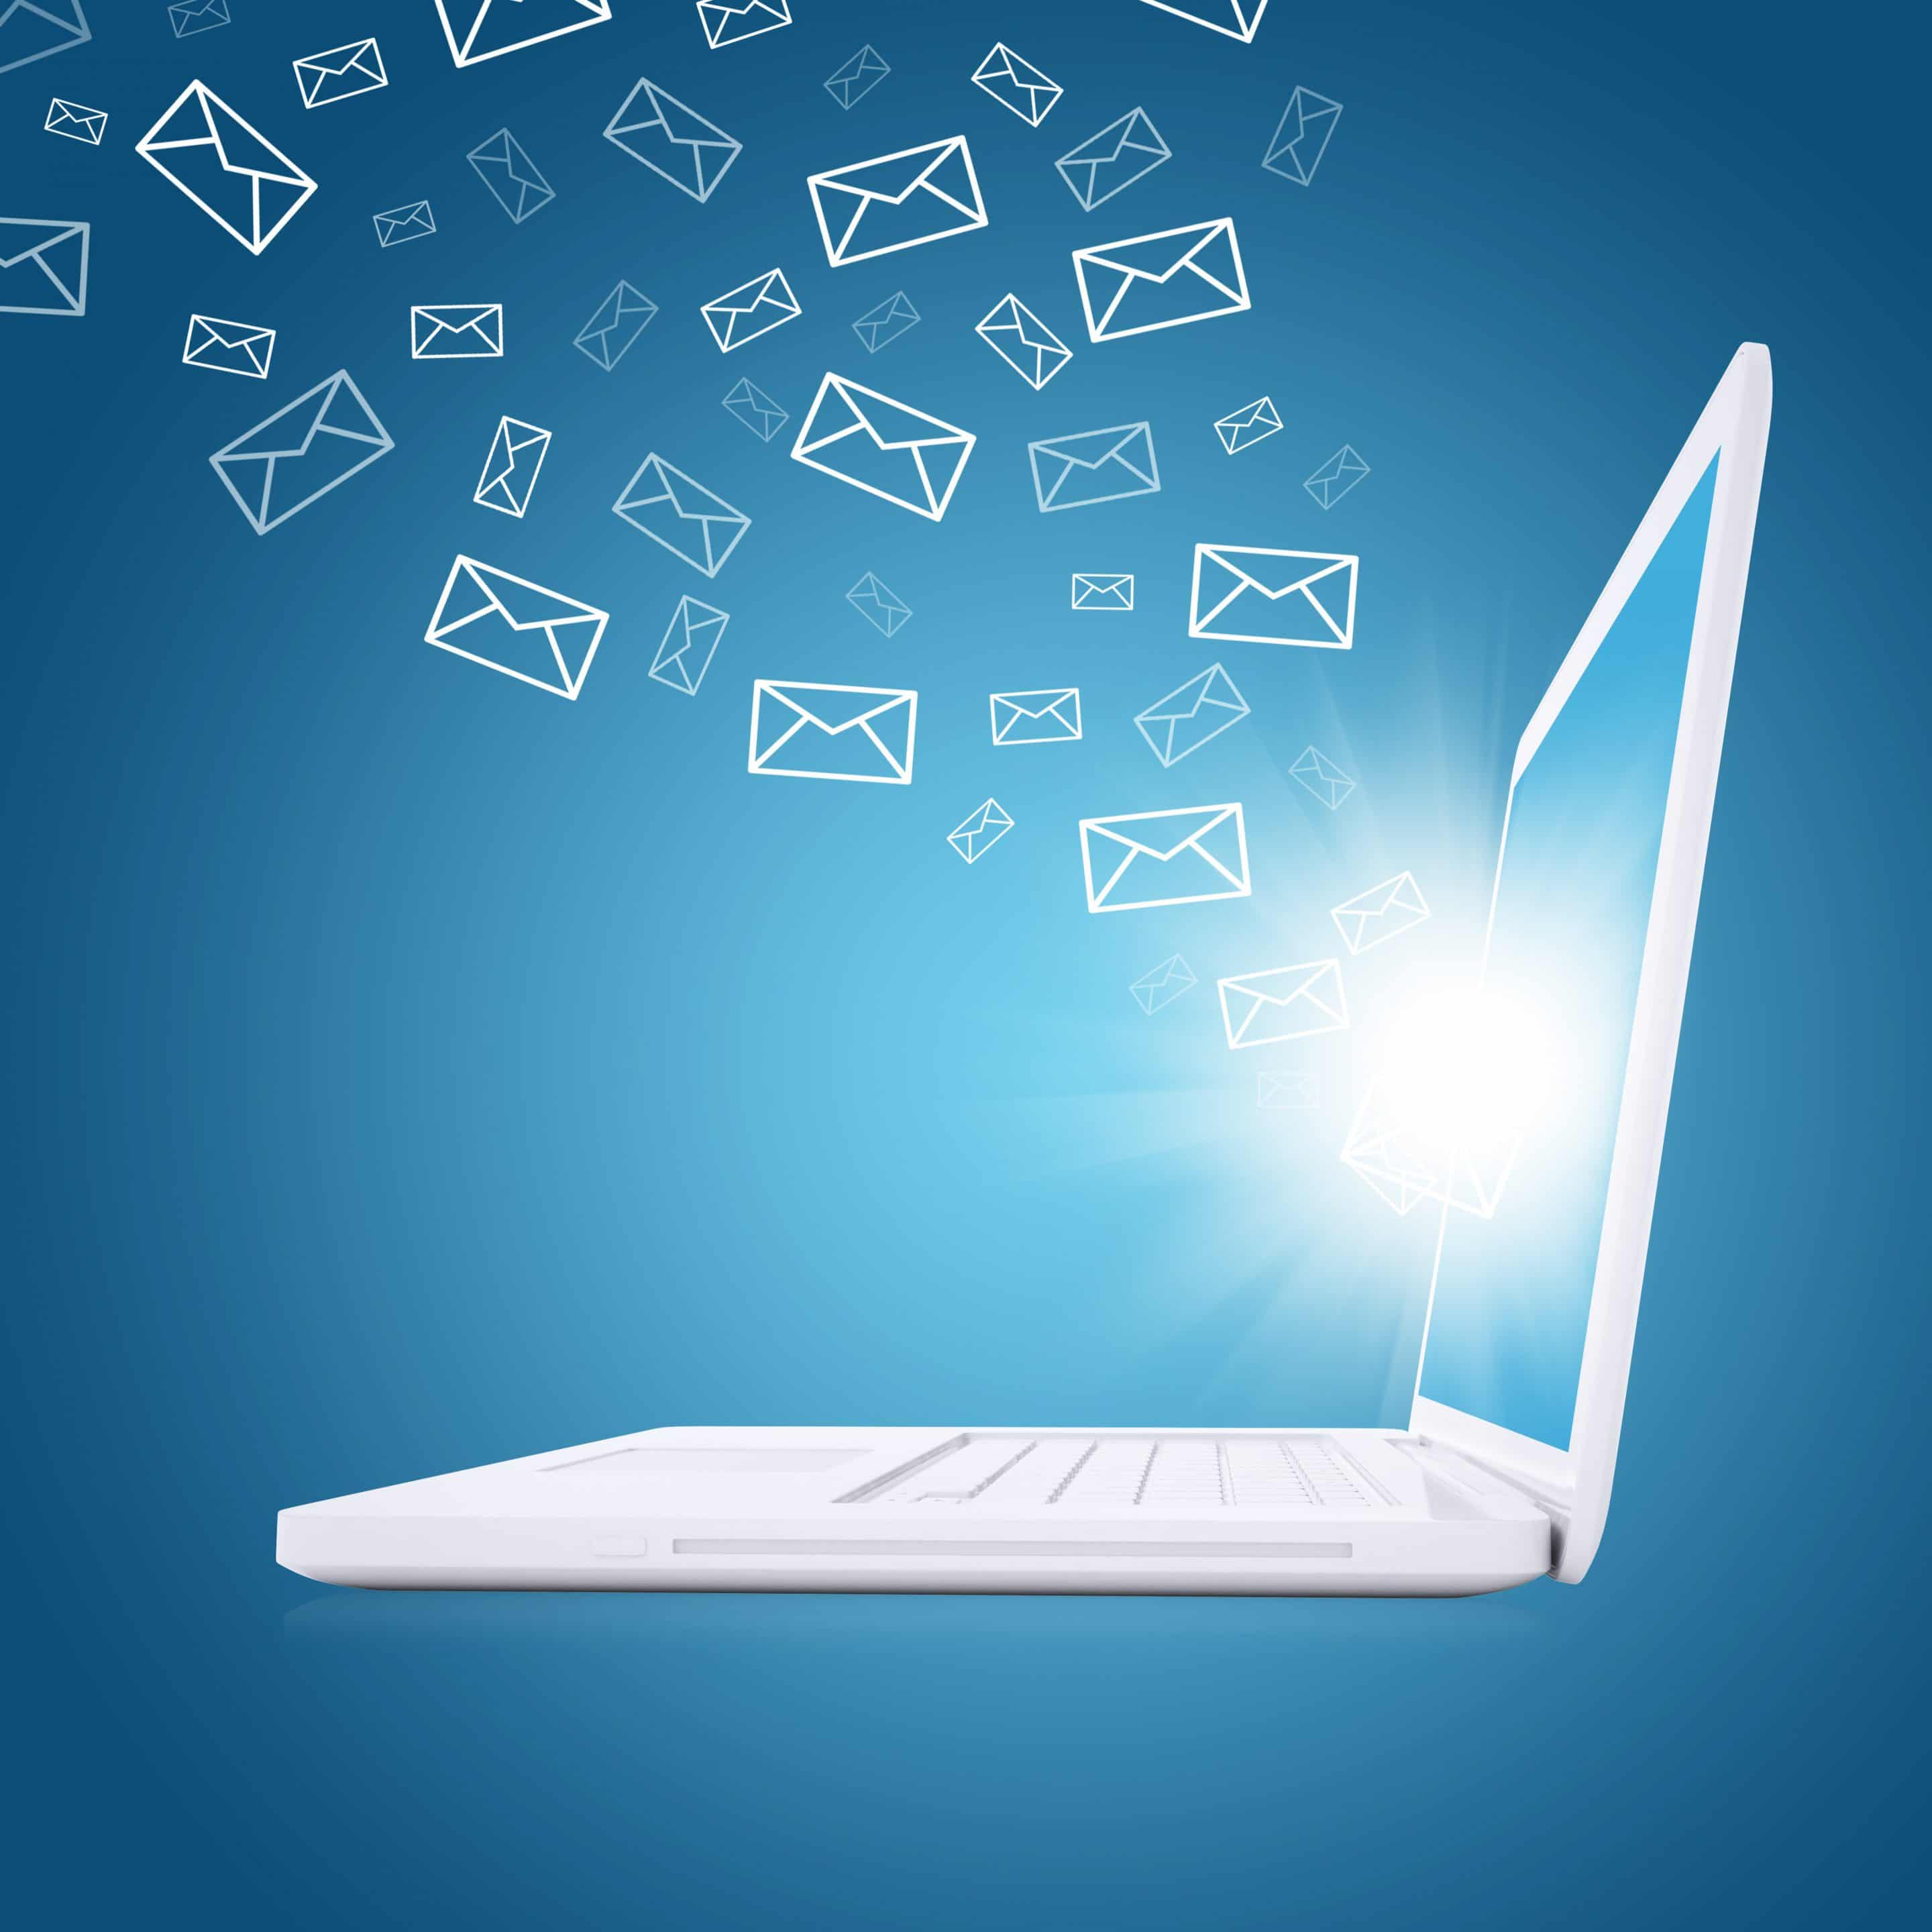 9 Tips You Need to Follow for Successful Email Marketing